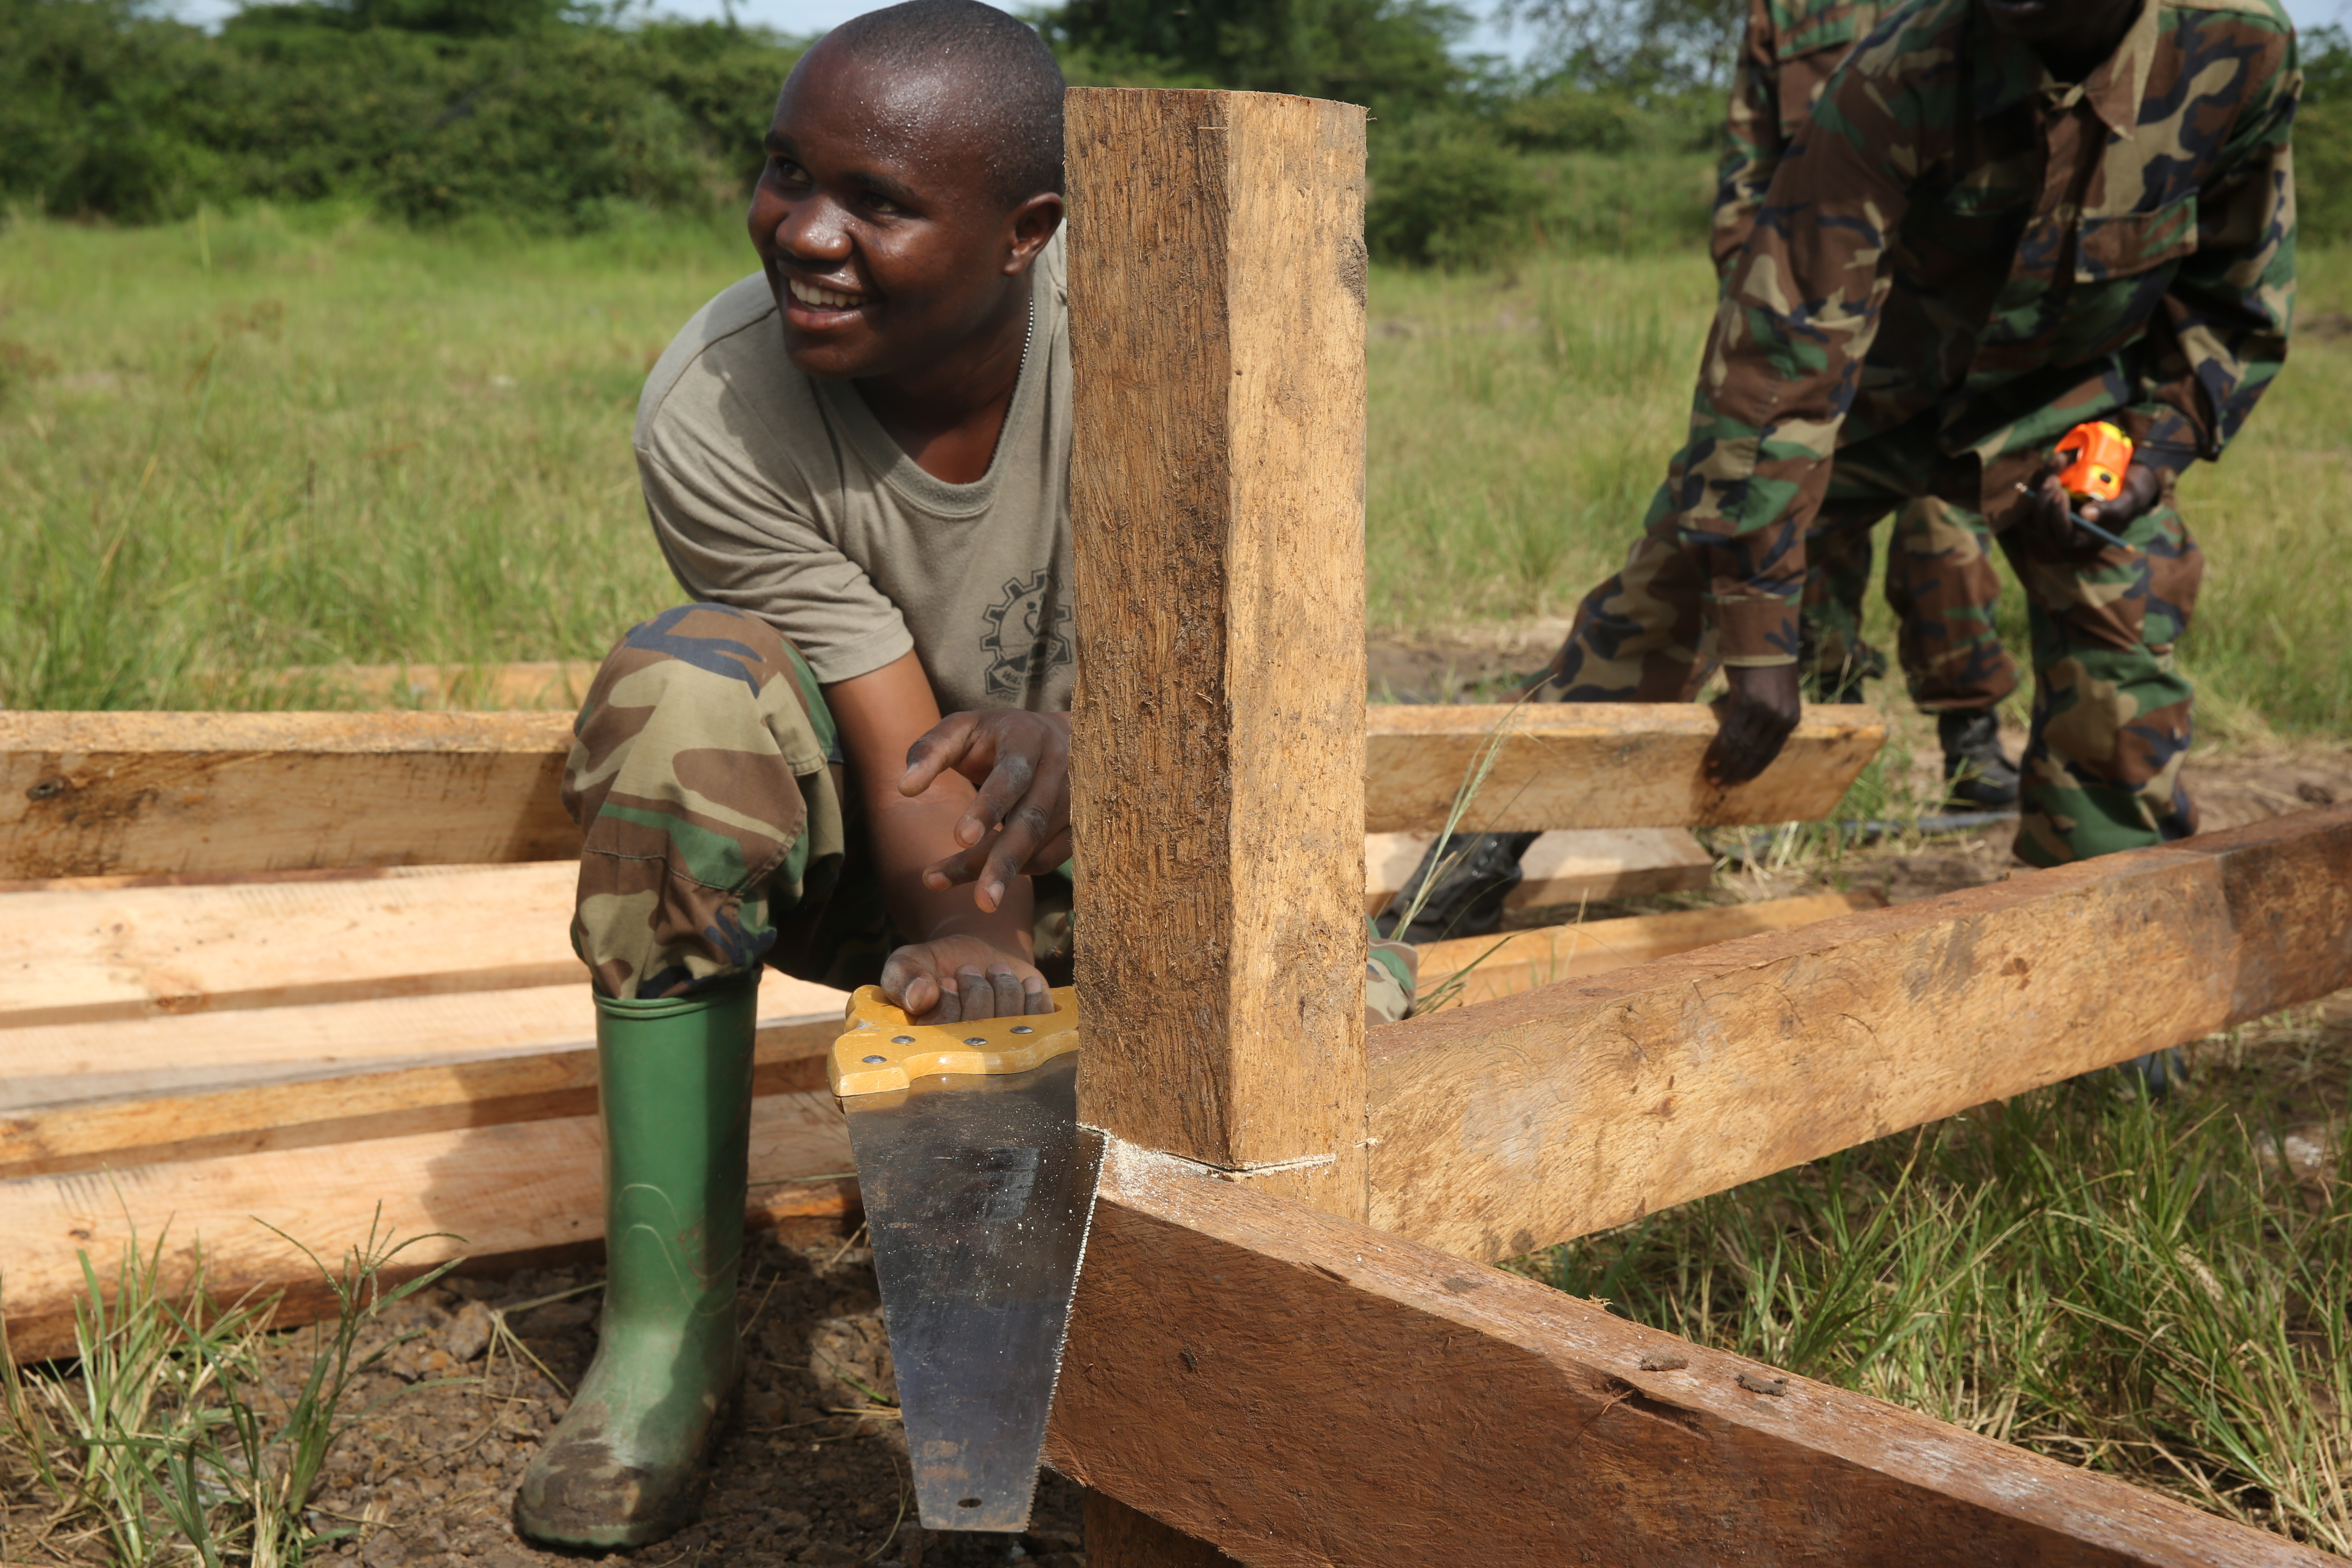 A Uganda People's Defense Force soldier saws the top of a post in preparation to finish the flooring during a civil engineering exercise at Camp Singo, Nov. 16, 2015. The exercise helps the partner nations fortify their civil engineering skills while strengthening the bond between the two. (U.S. Marine Corps photo by Cpl. Olivia McDonald/Released)